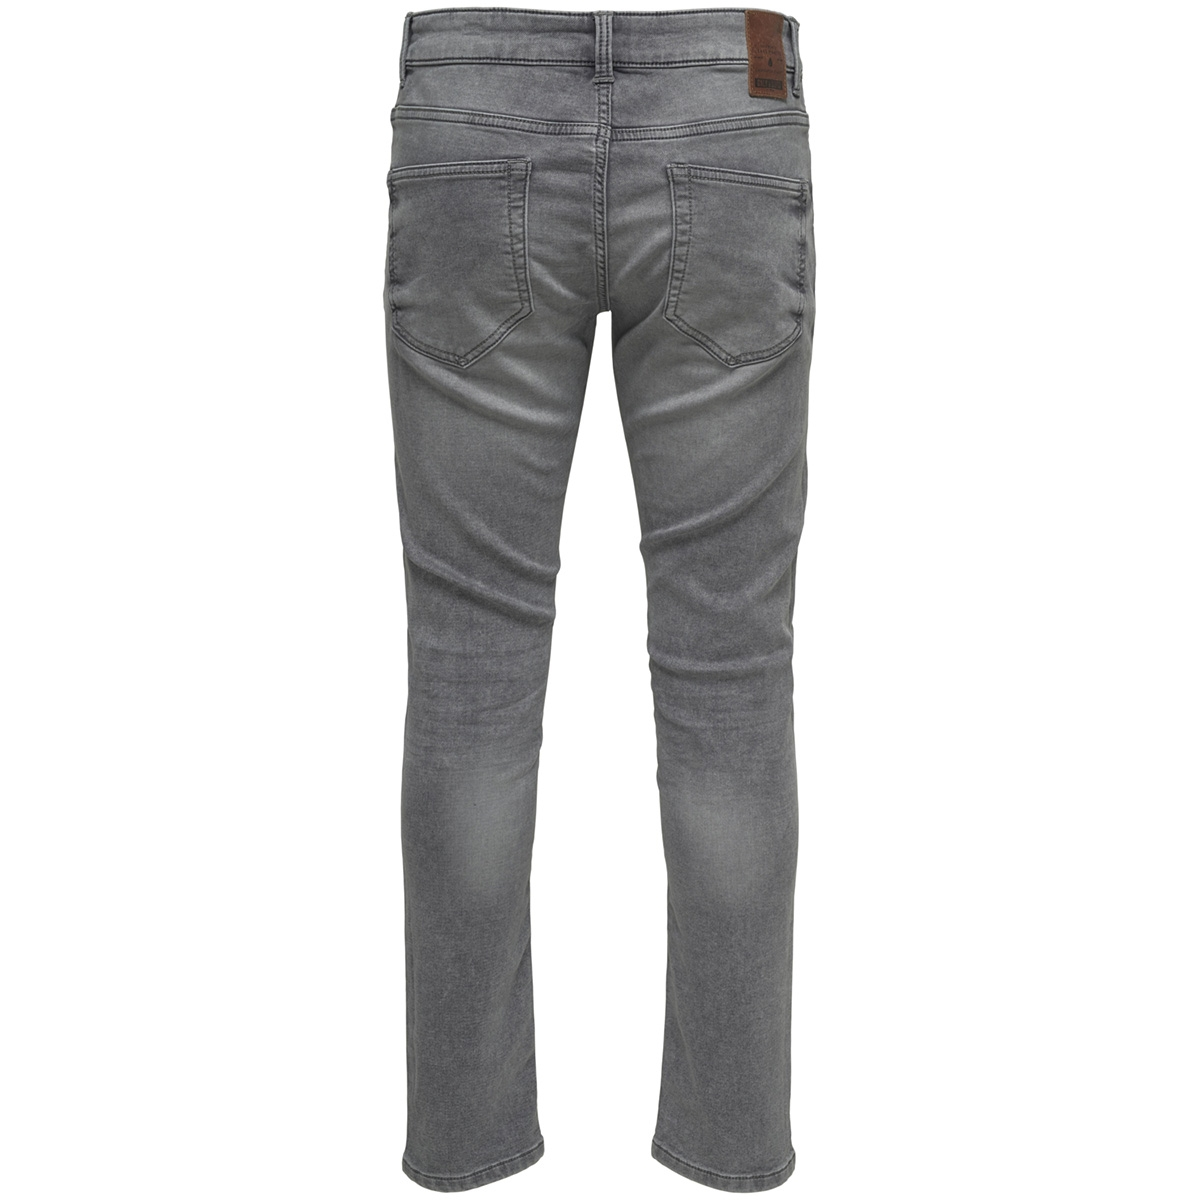 onsloom grey jog pk 1444 noos 22011444 only & sons jeans grey denim